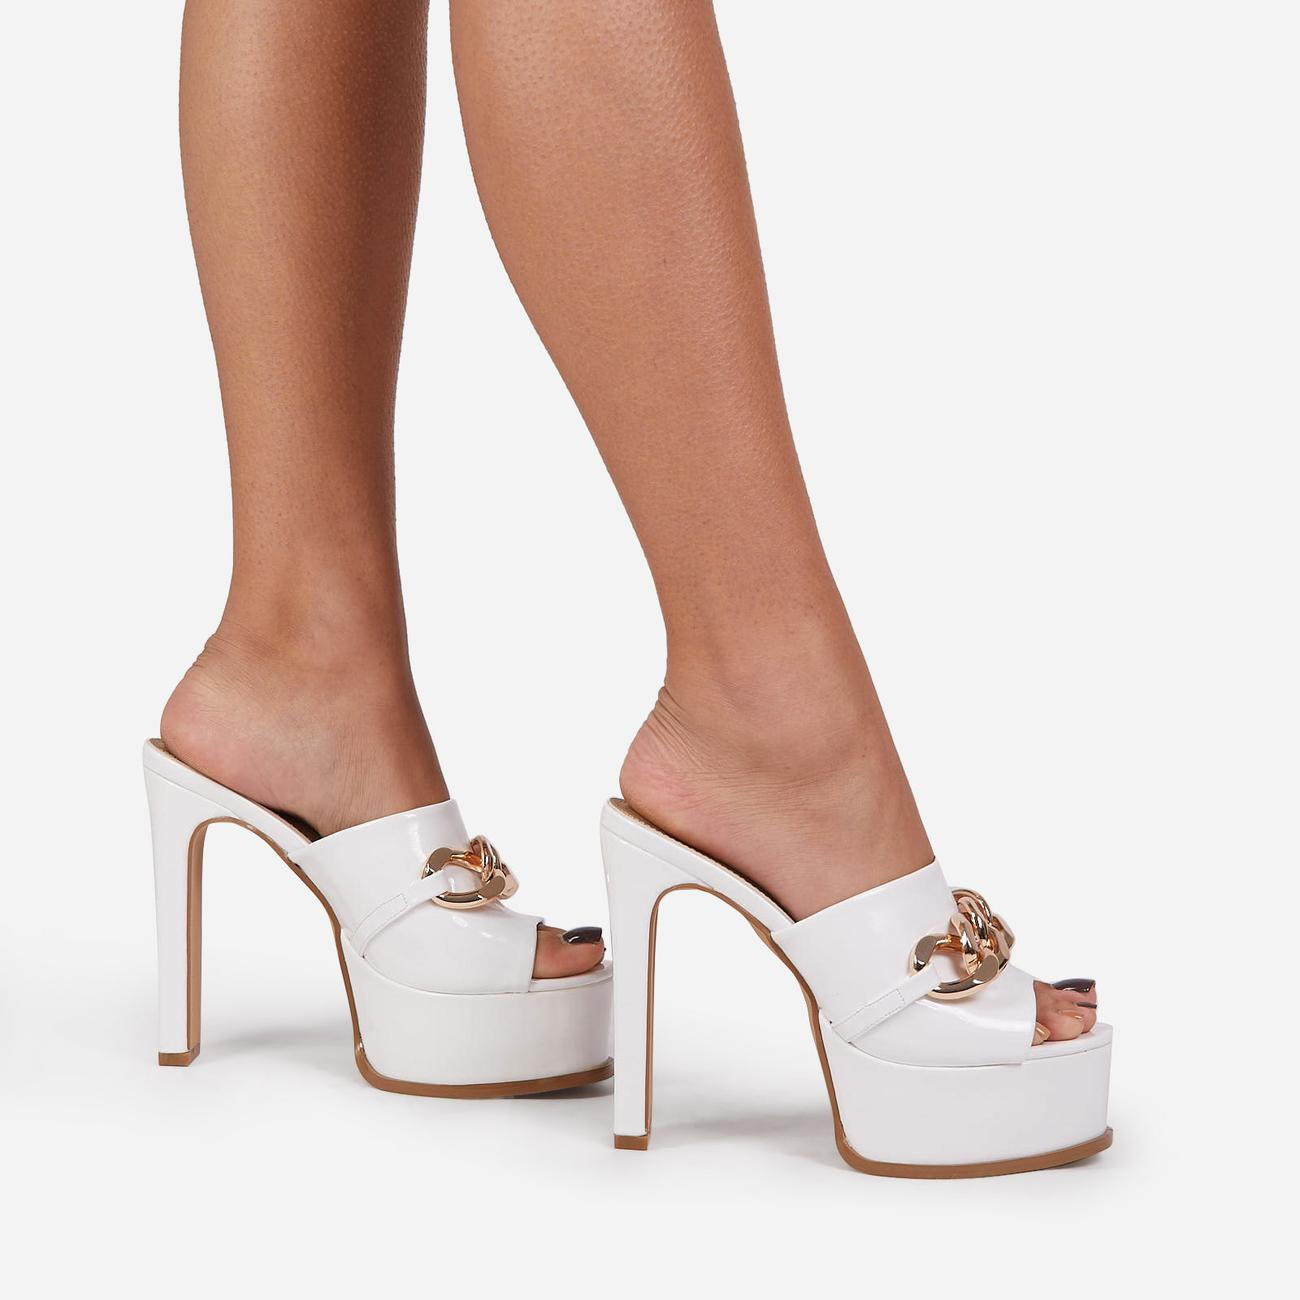 No-Chill Chain Detail Open Toe Platform Thin Block Heel Mule In White Patent Image 3